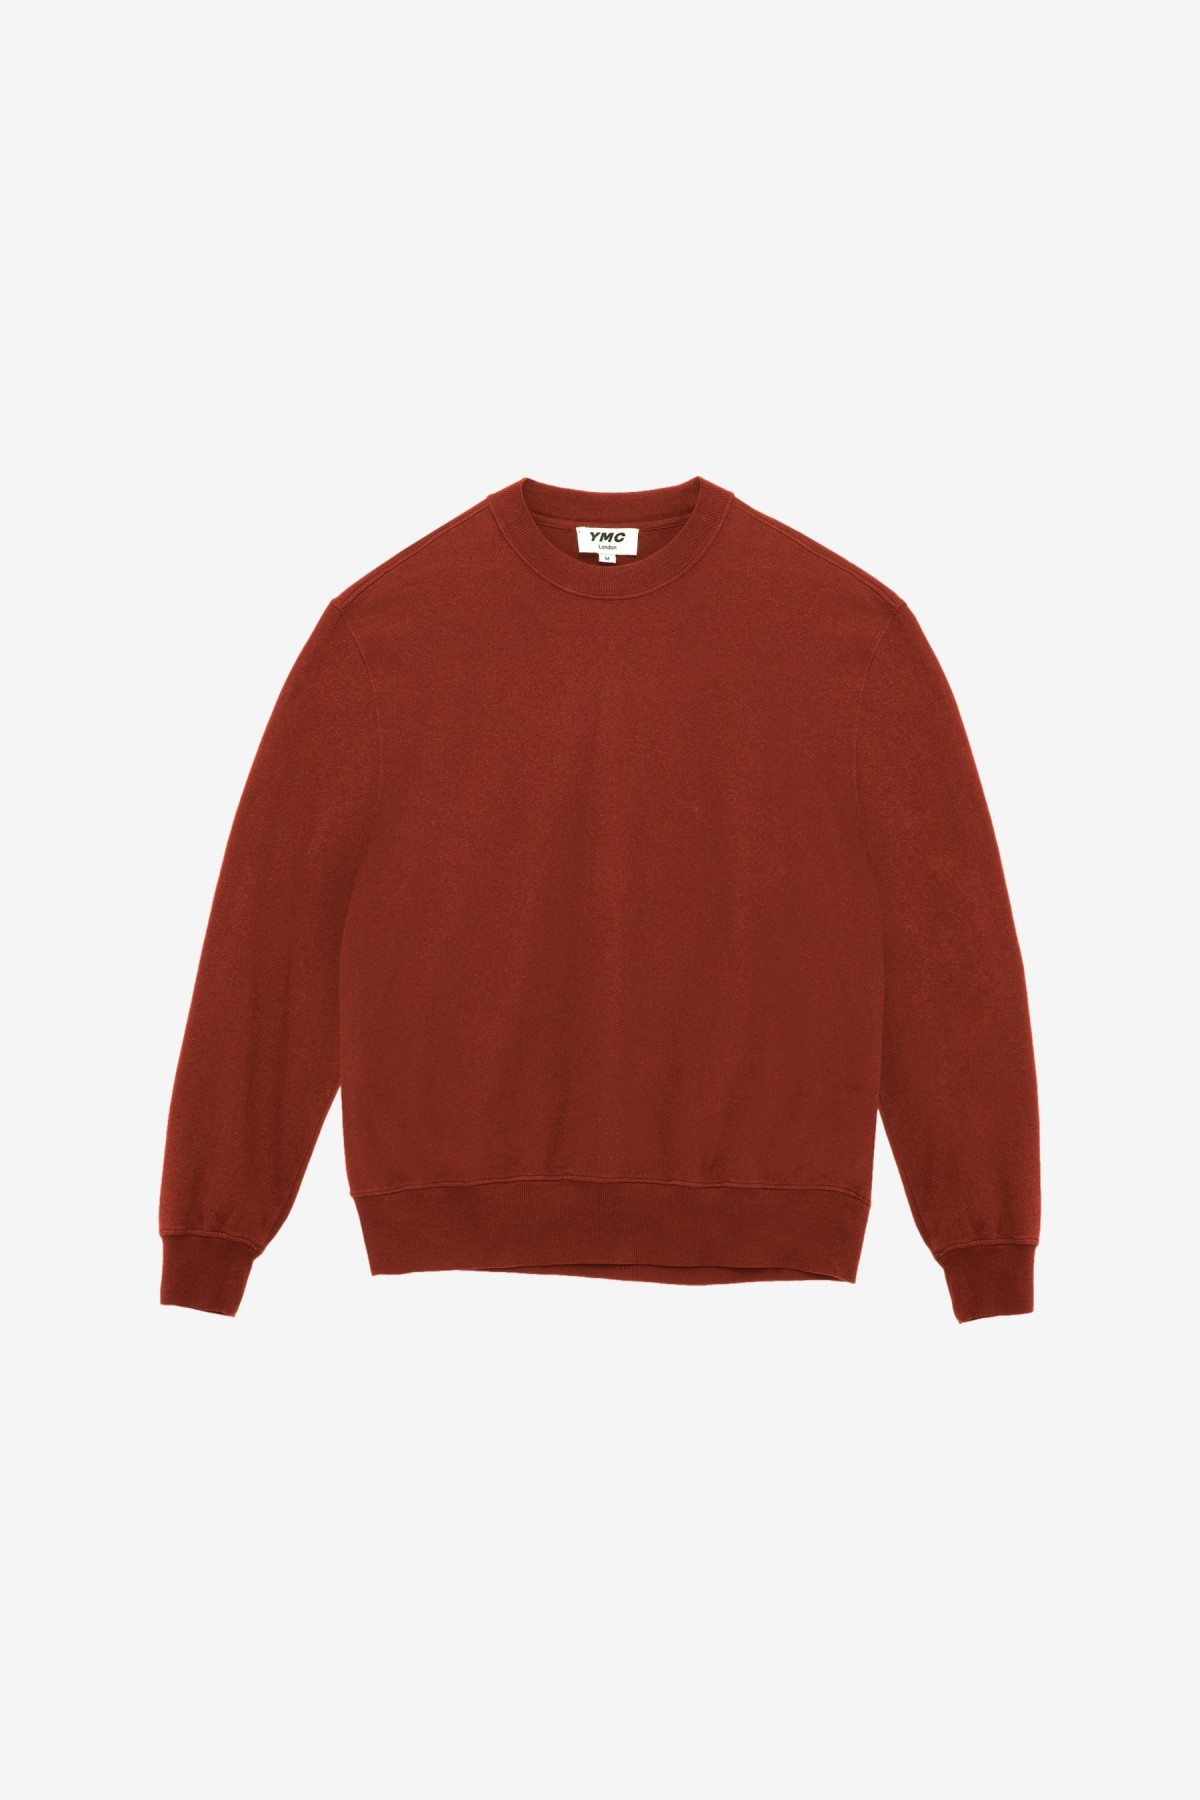 YMC You Must Create Triple L/S T Shirt in Red